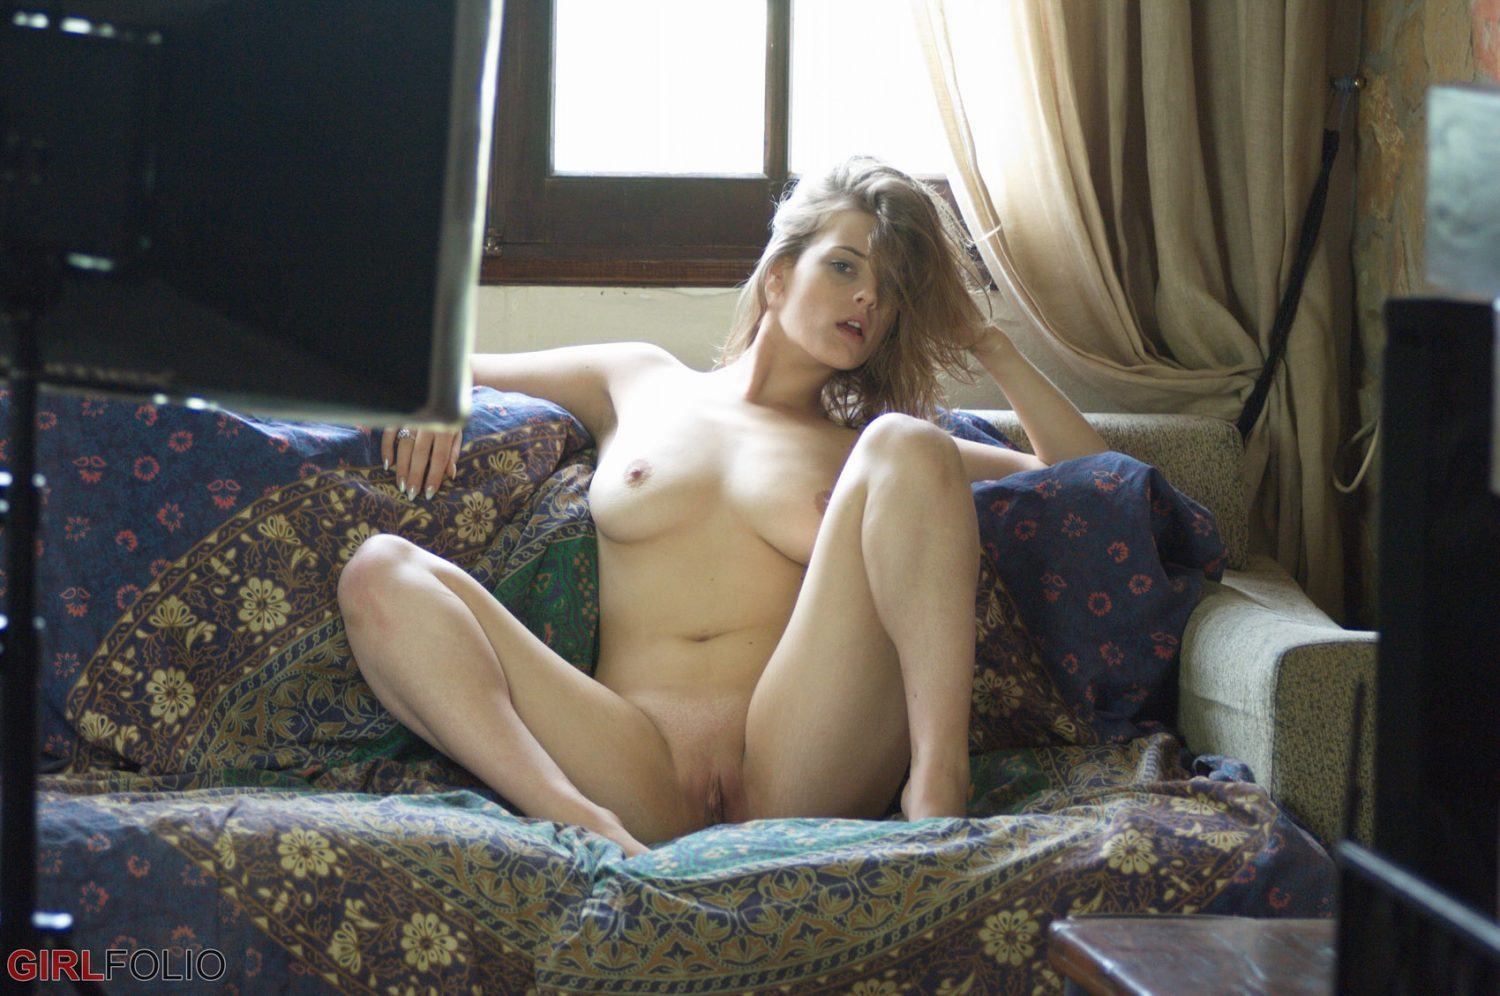 Lottii Rose Candid Nudes for Girlfolio